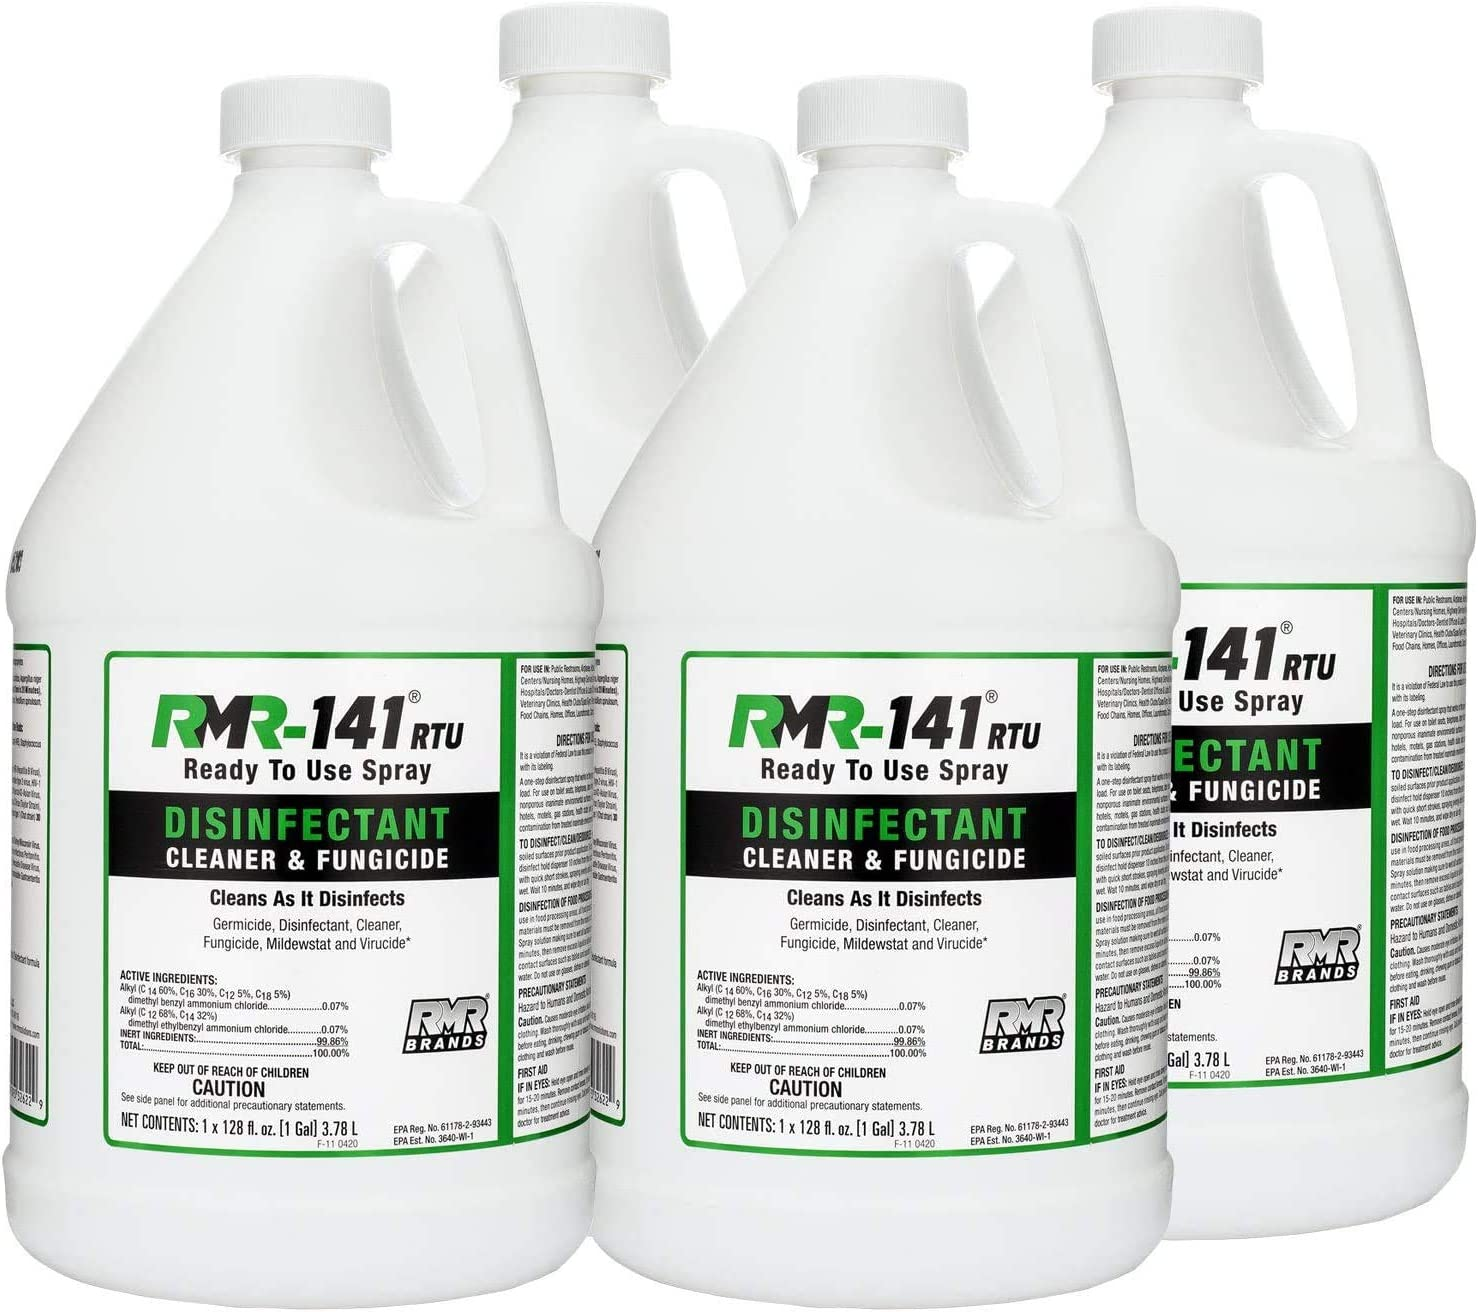 RMR-141 RTU Mold Killer, Cleaner to Kill Mold, Inhibits the Growth of Mold and Mildew, Disinfectant and Cleaner, Kills 99% of Household Bacteria and Viruses, EPA-Registered Product, 1 Gallon (4-Pack)